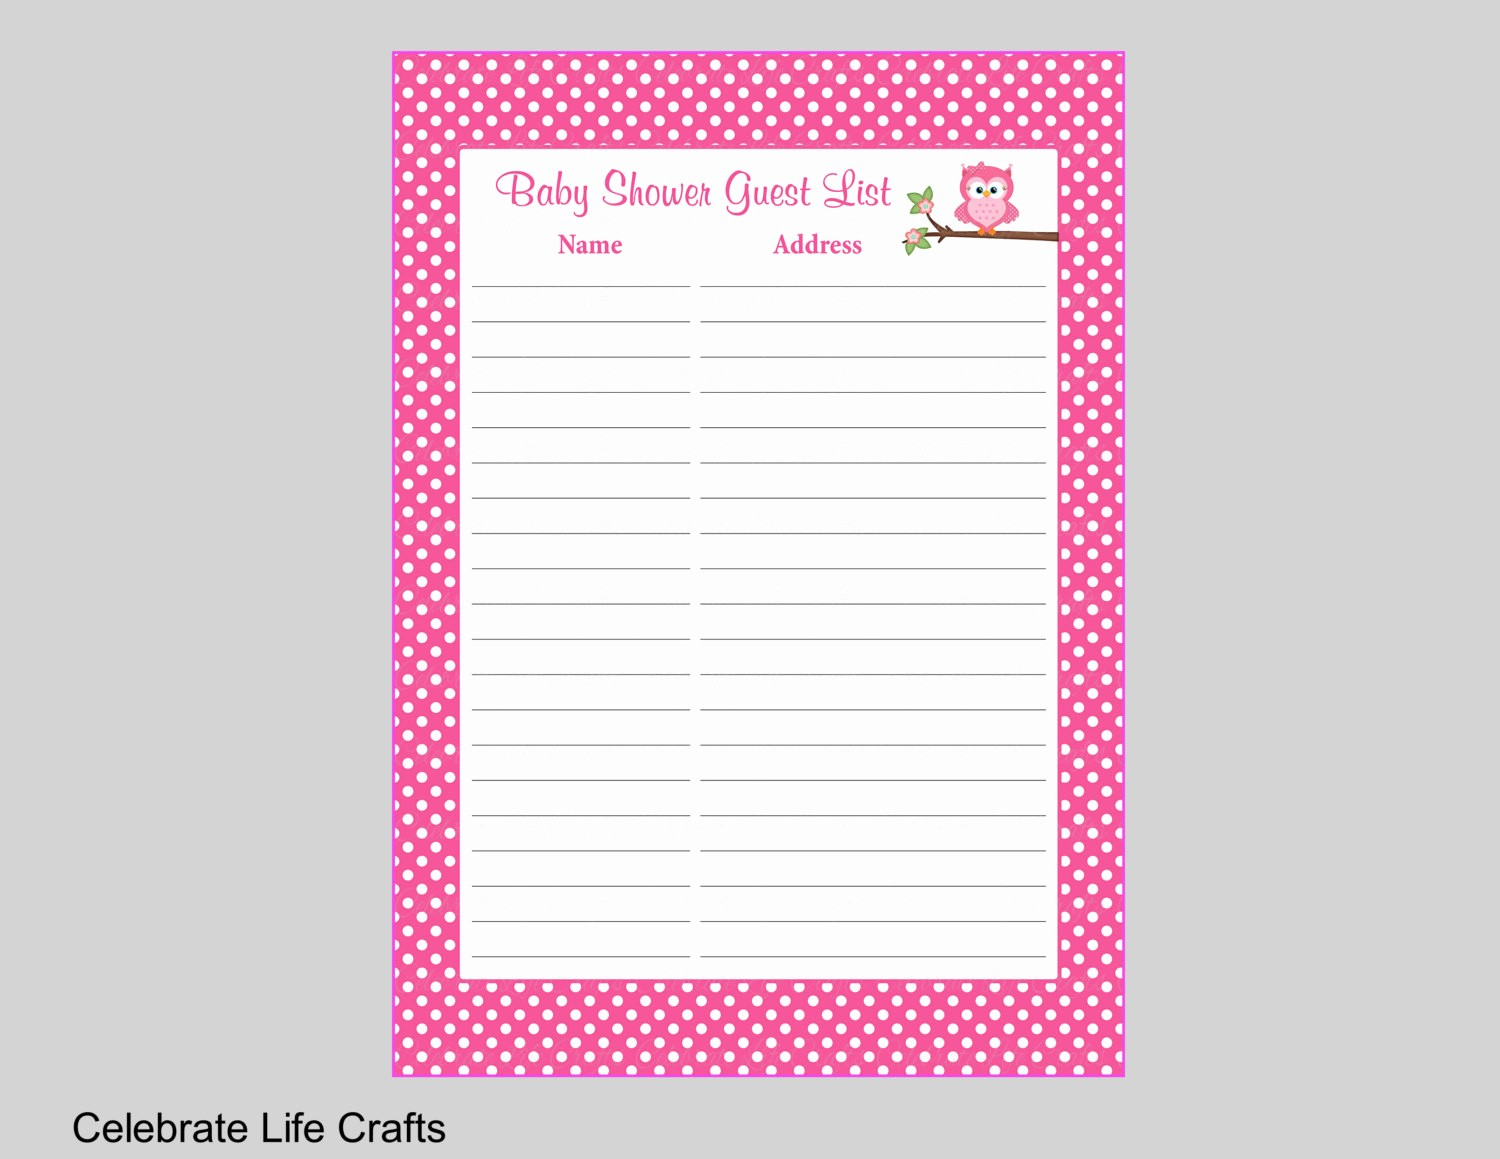 Baby Shower Guest List Printable Awesome Owl Baby Shower Guest List Printable Sign In Sheet with